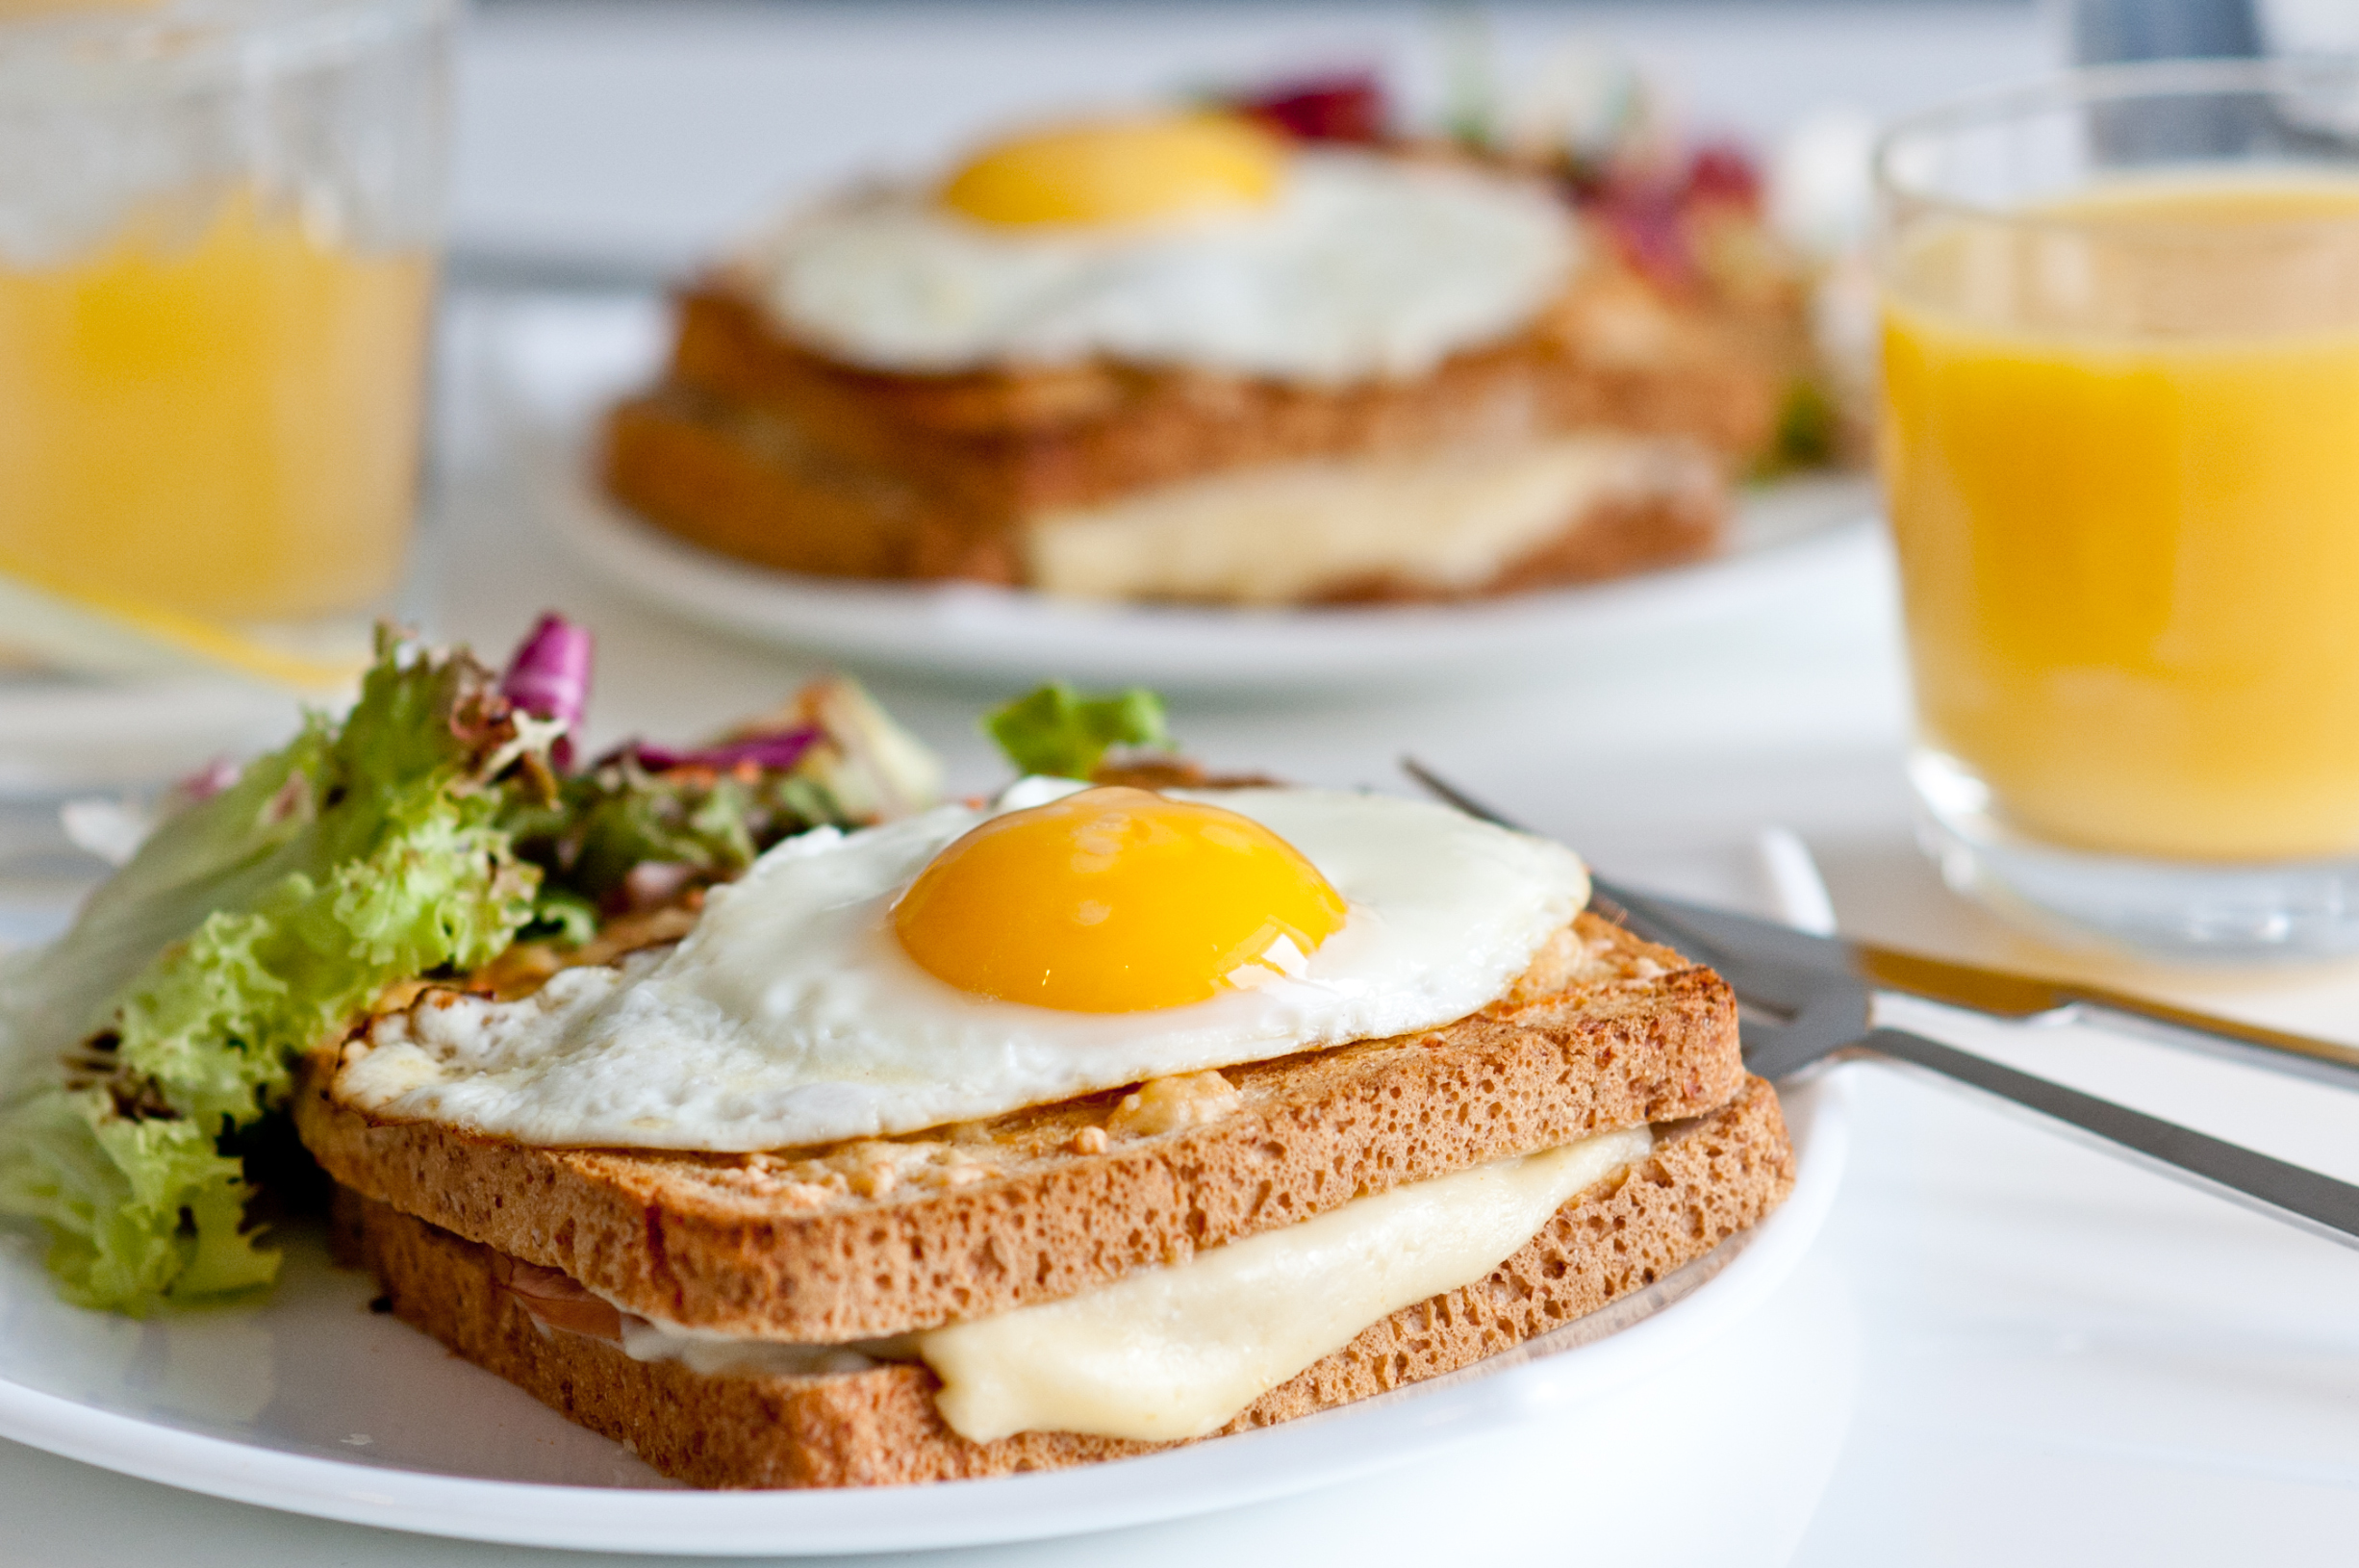 Croque madame with juice - traditional French breakfast